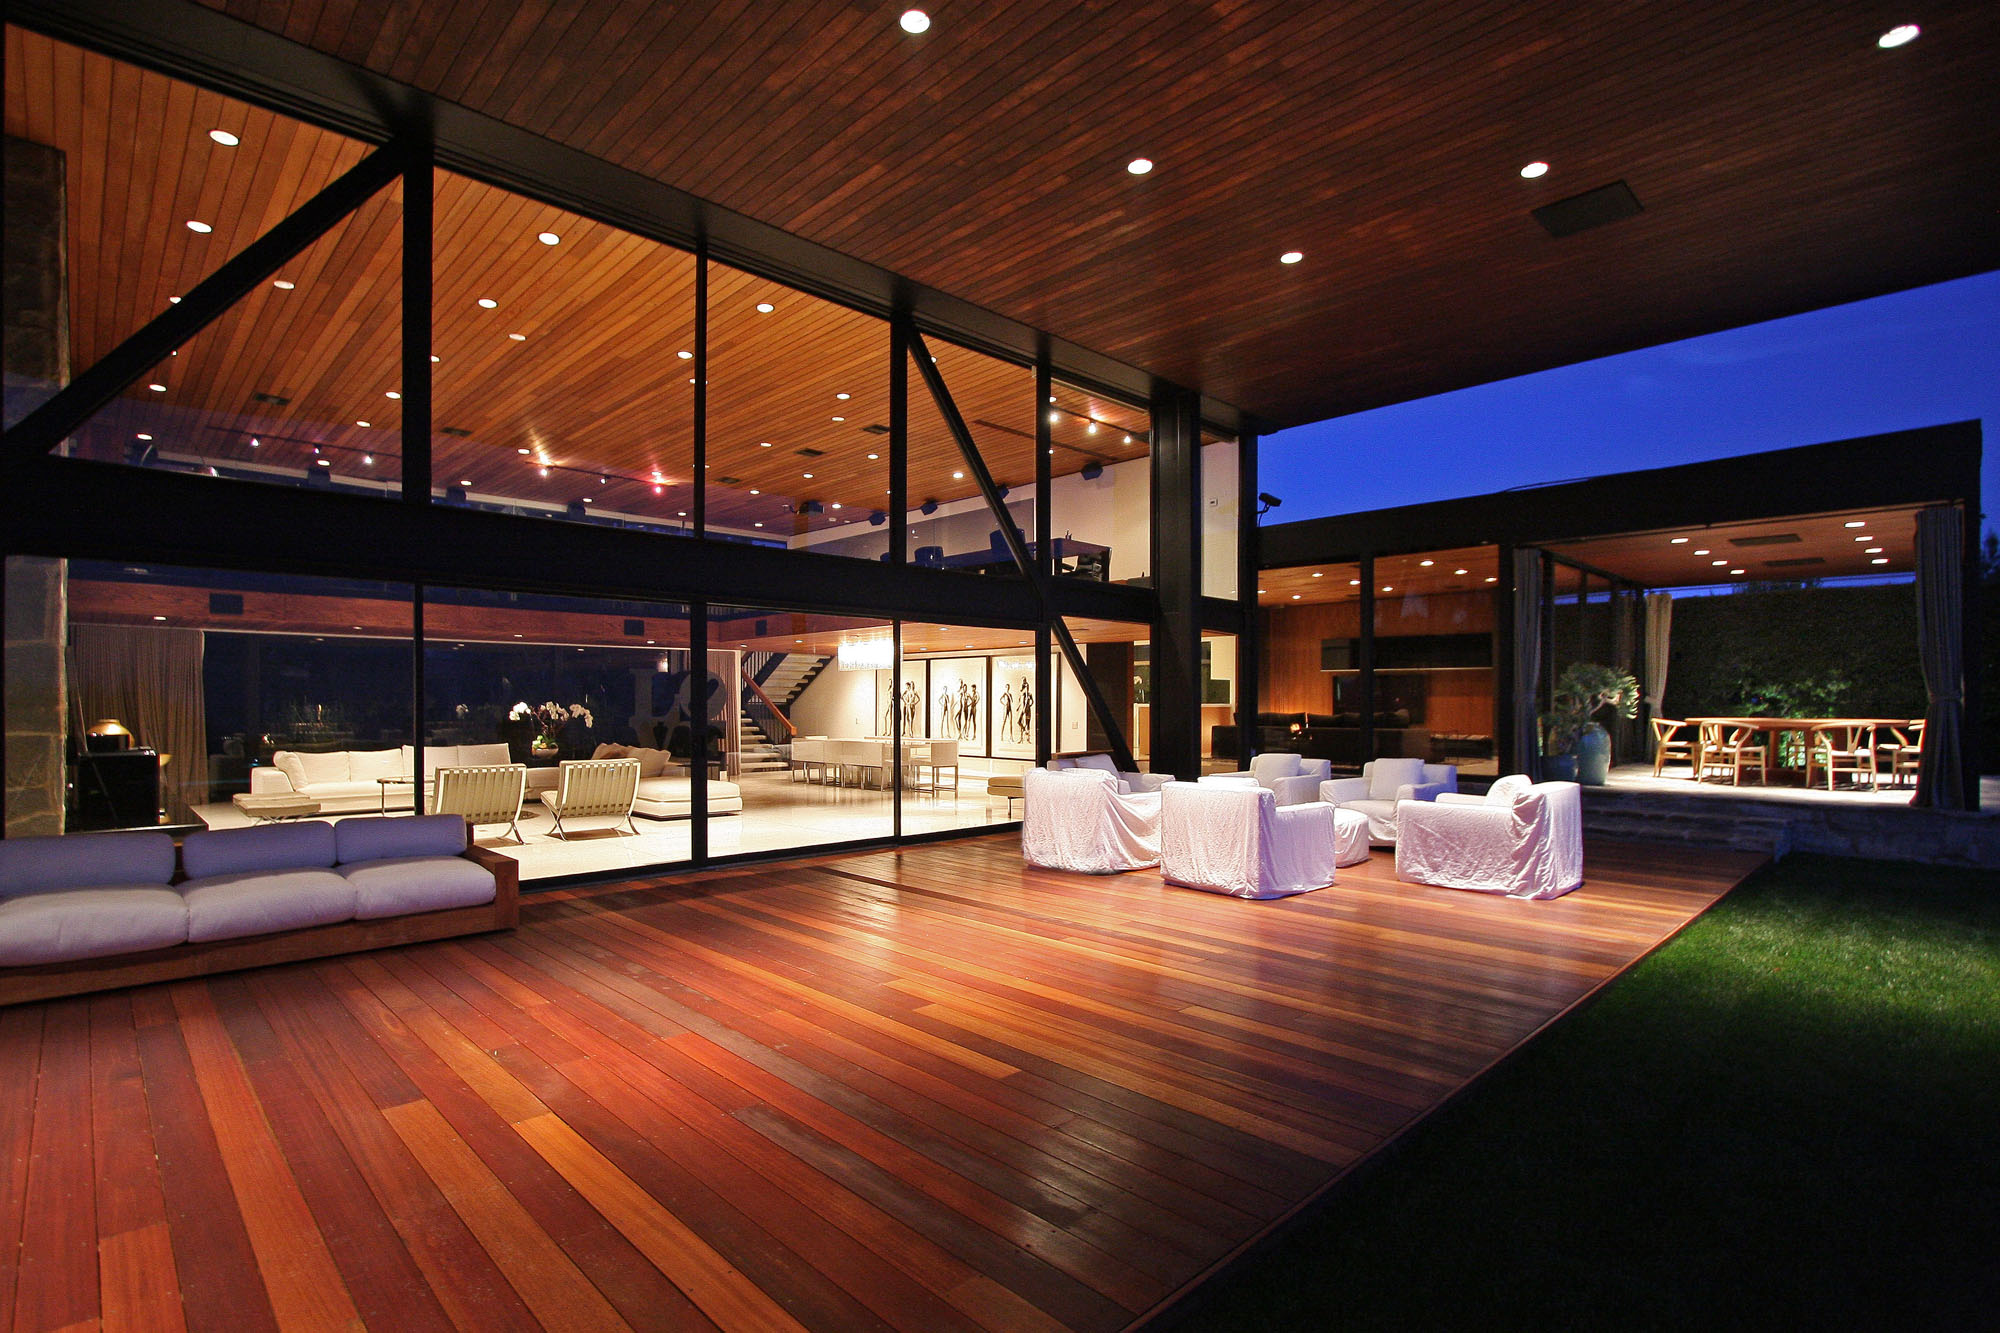 Wood Deck Terrace Revamped Interior in Beverly Hills